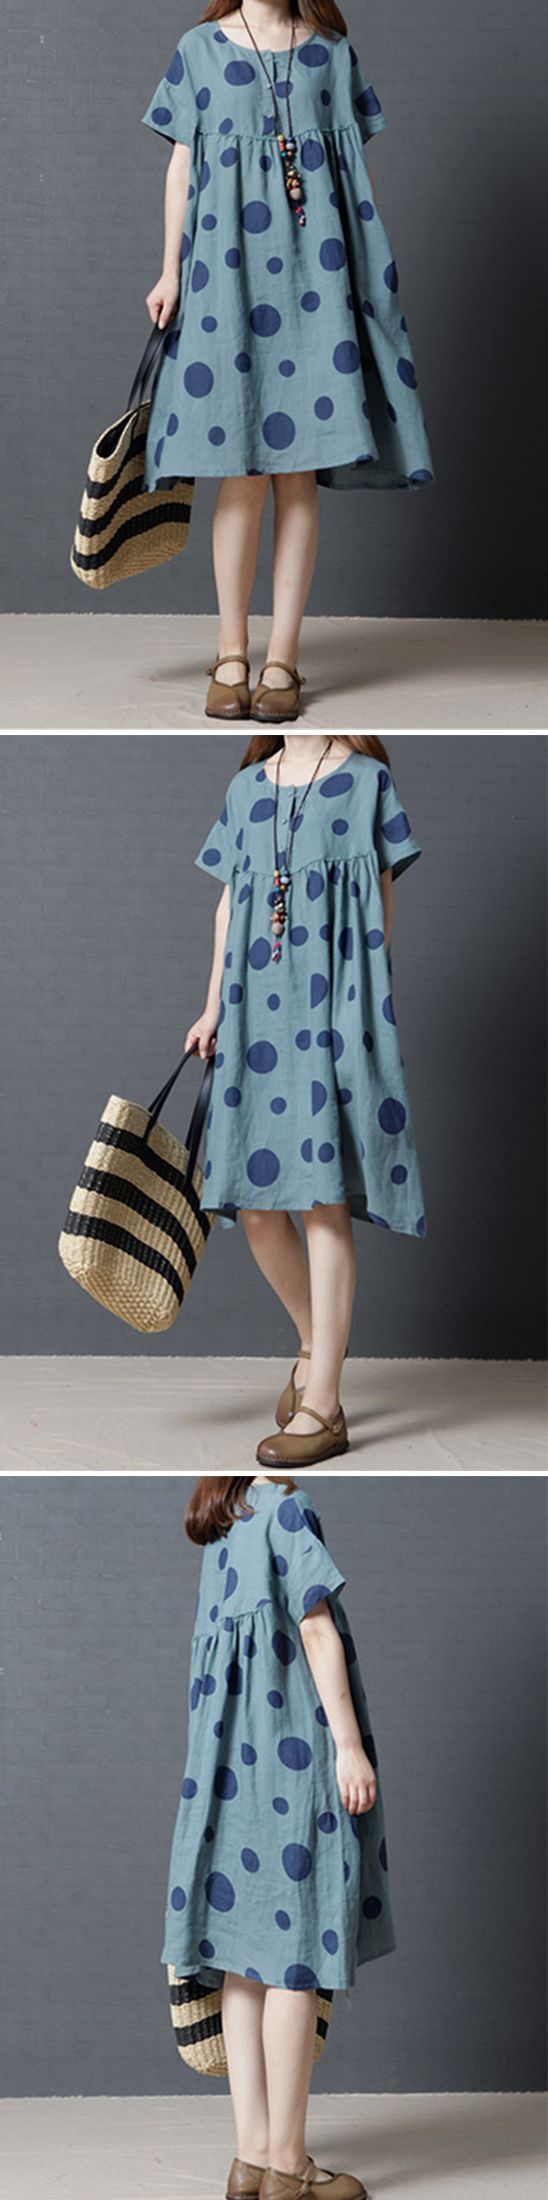 US$25.56 Vintage Women Polka Dots Short Sleeve Pocket Dresses